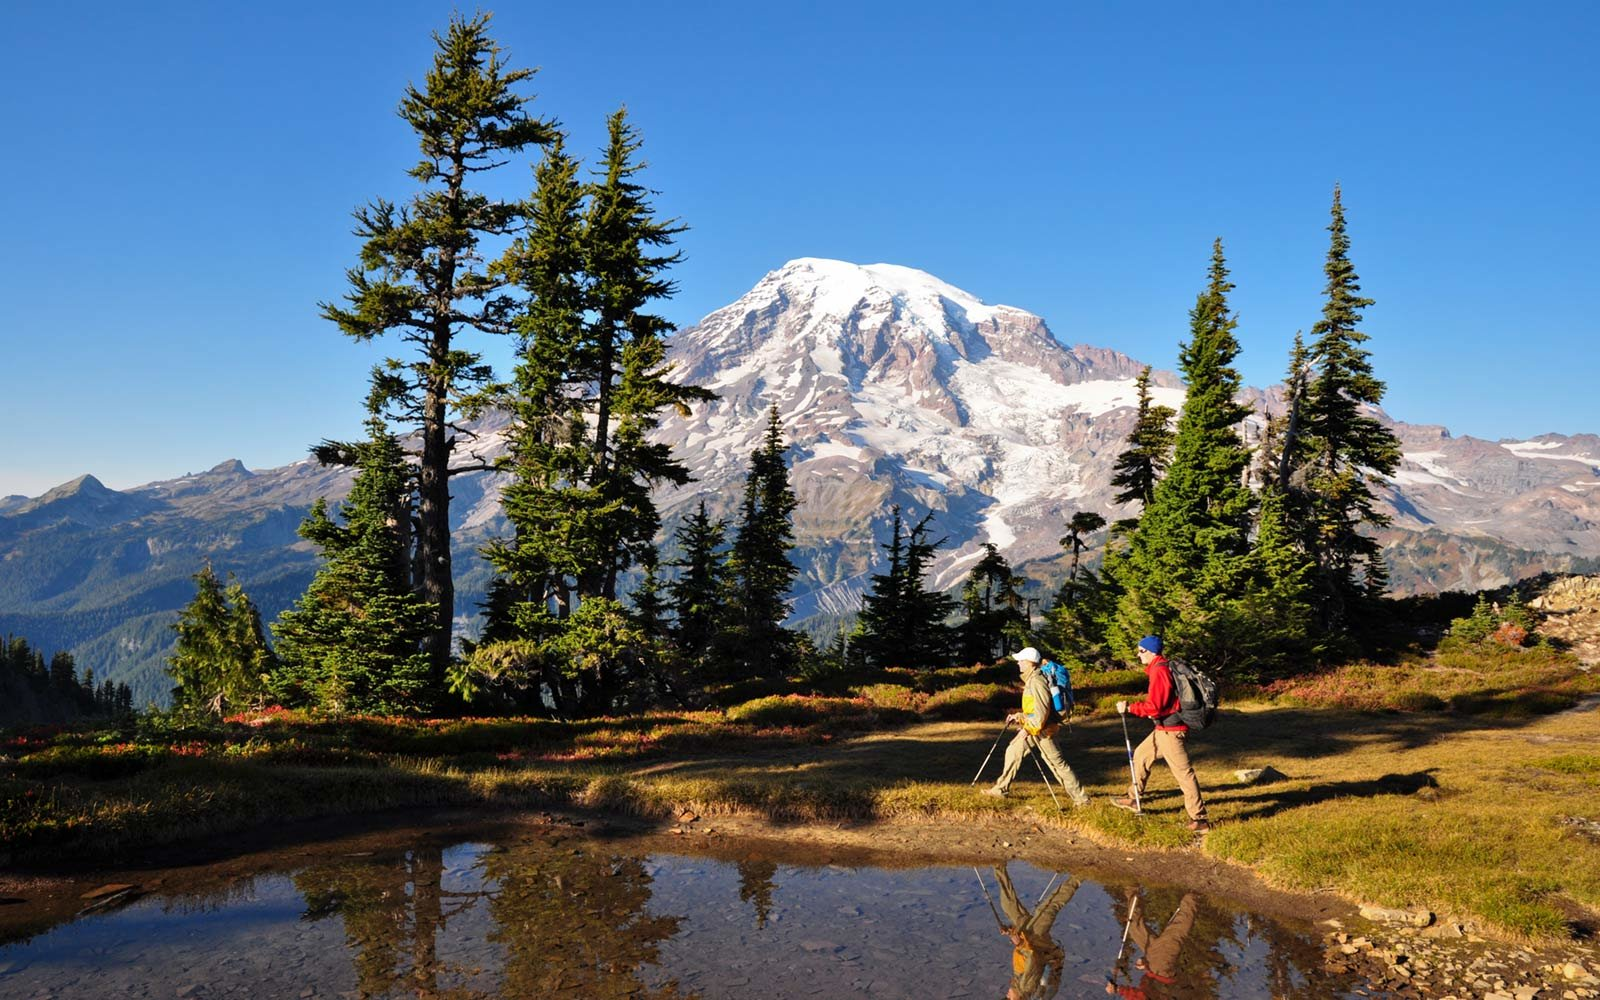 19-mount-rainier-national-park-washington-BESTHIKE0407.jpg